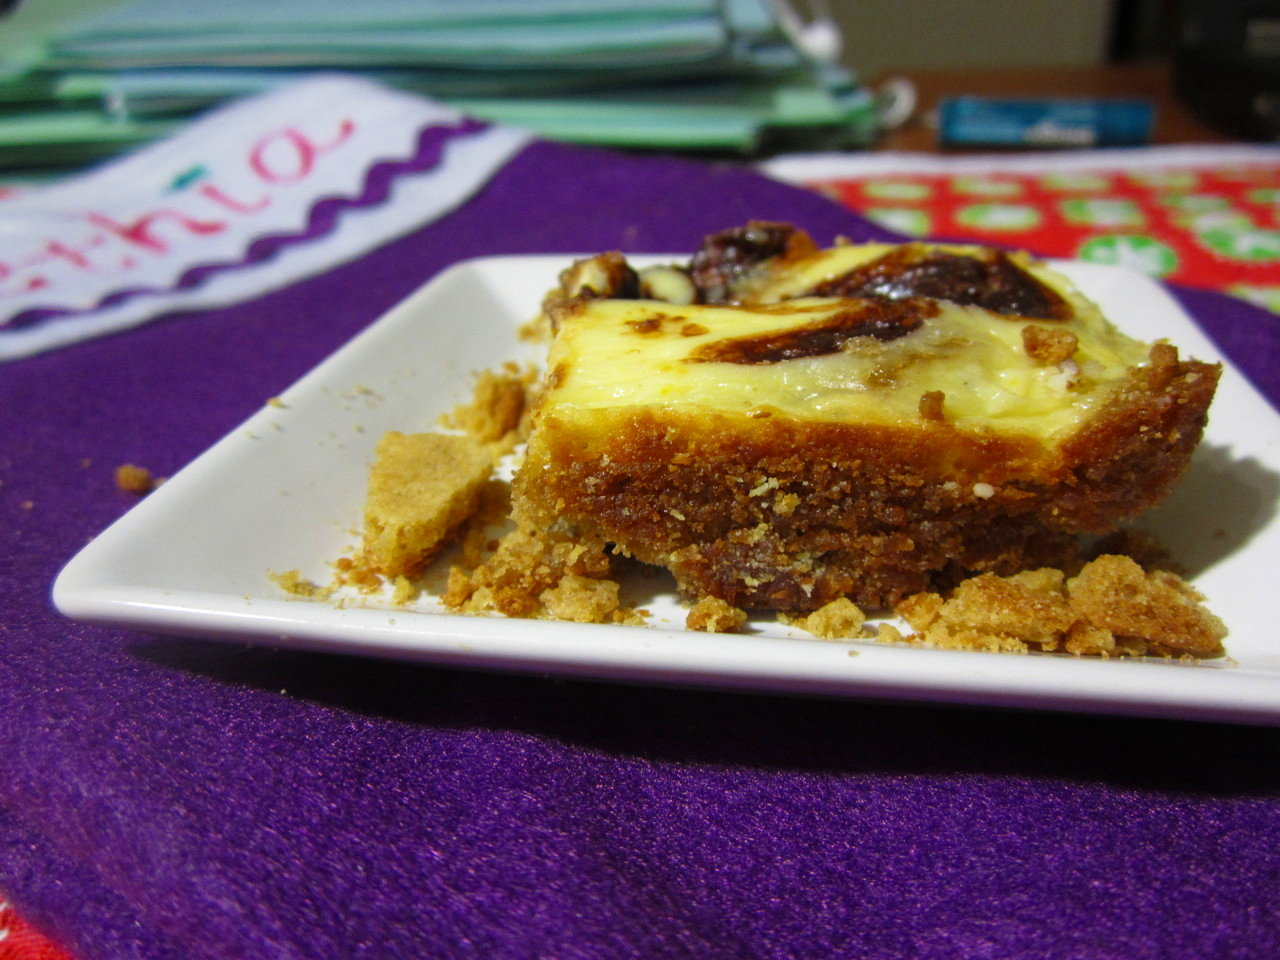 Zesty Orange Cheesecake Gingerbread Blondies 5 (12.17.12)